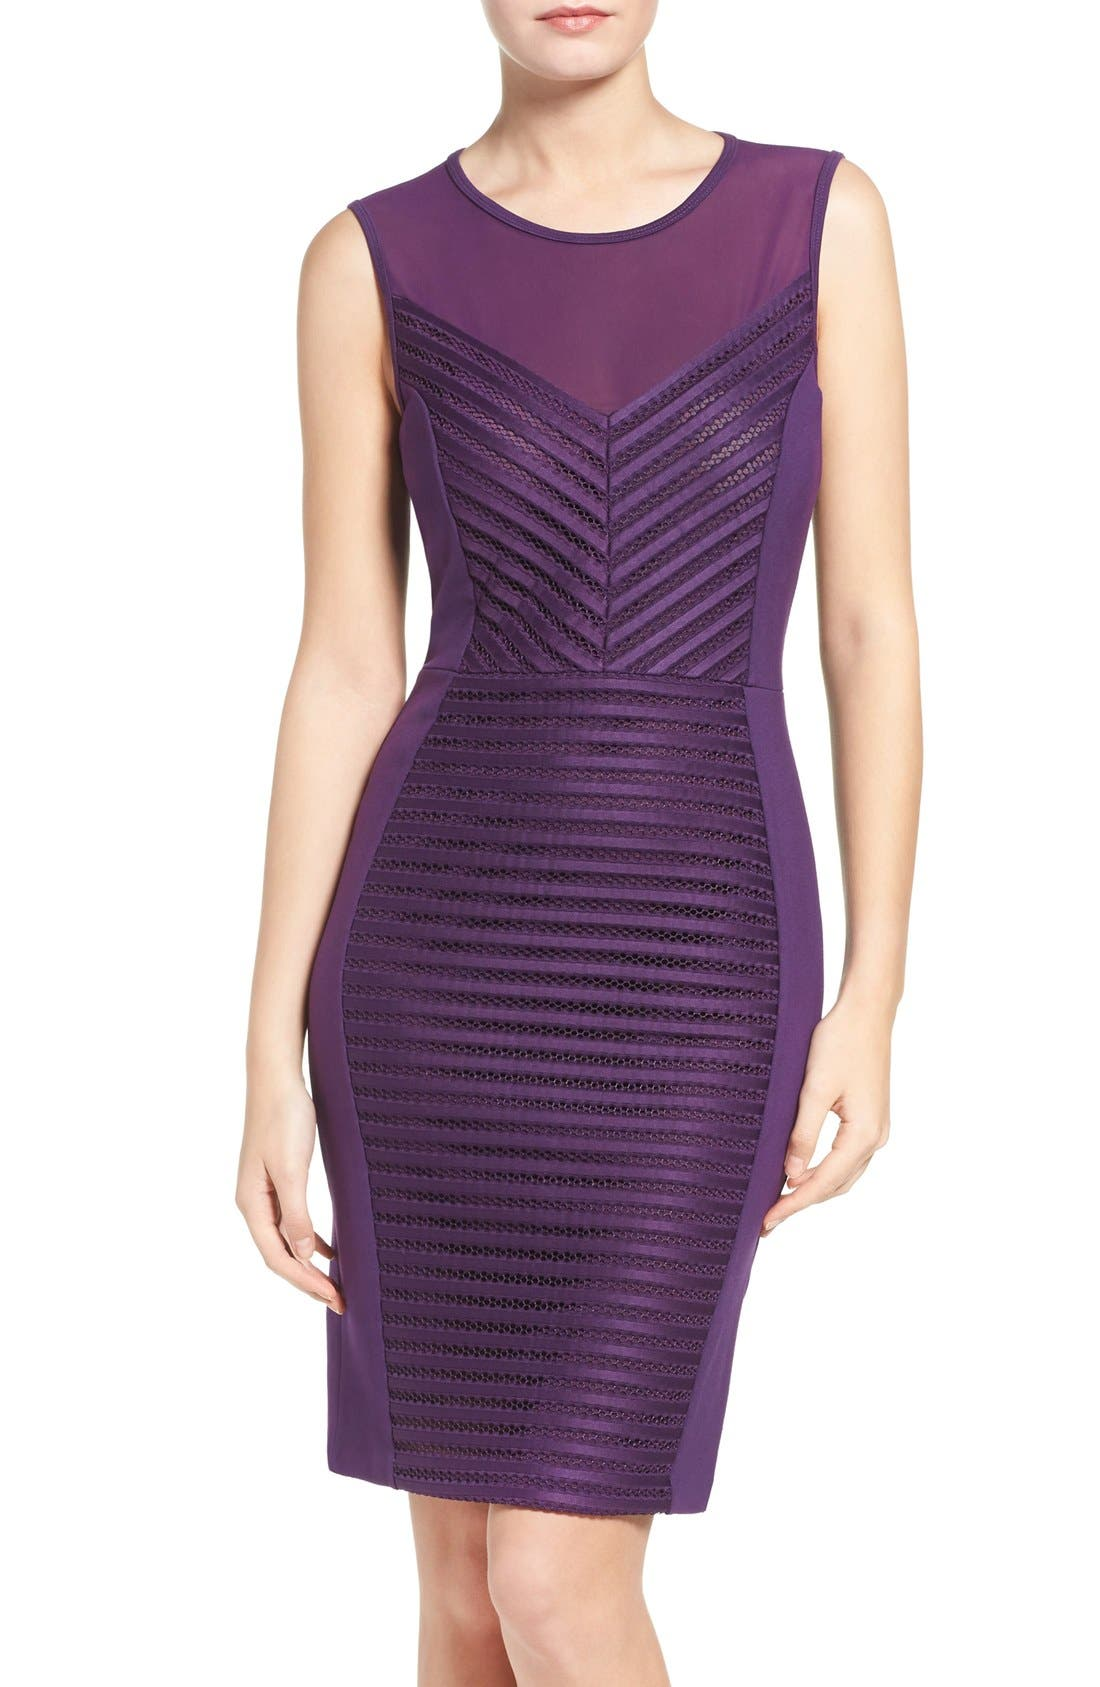 Alternate Image 1 Selected - French Connection Score Stretchy Sheath Dress